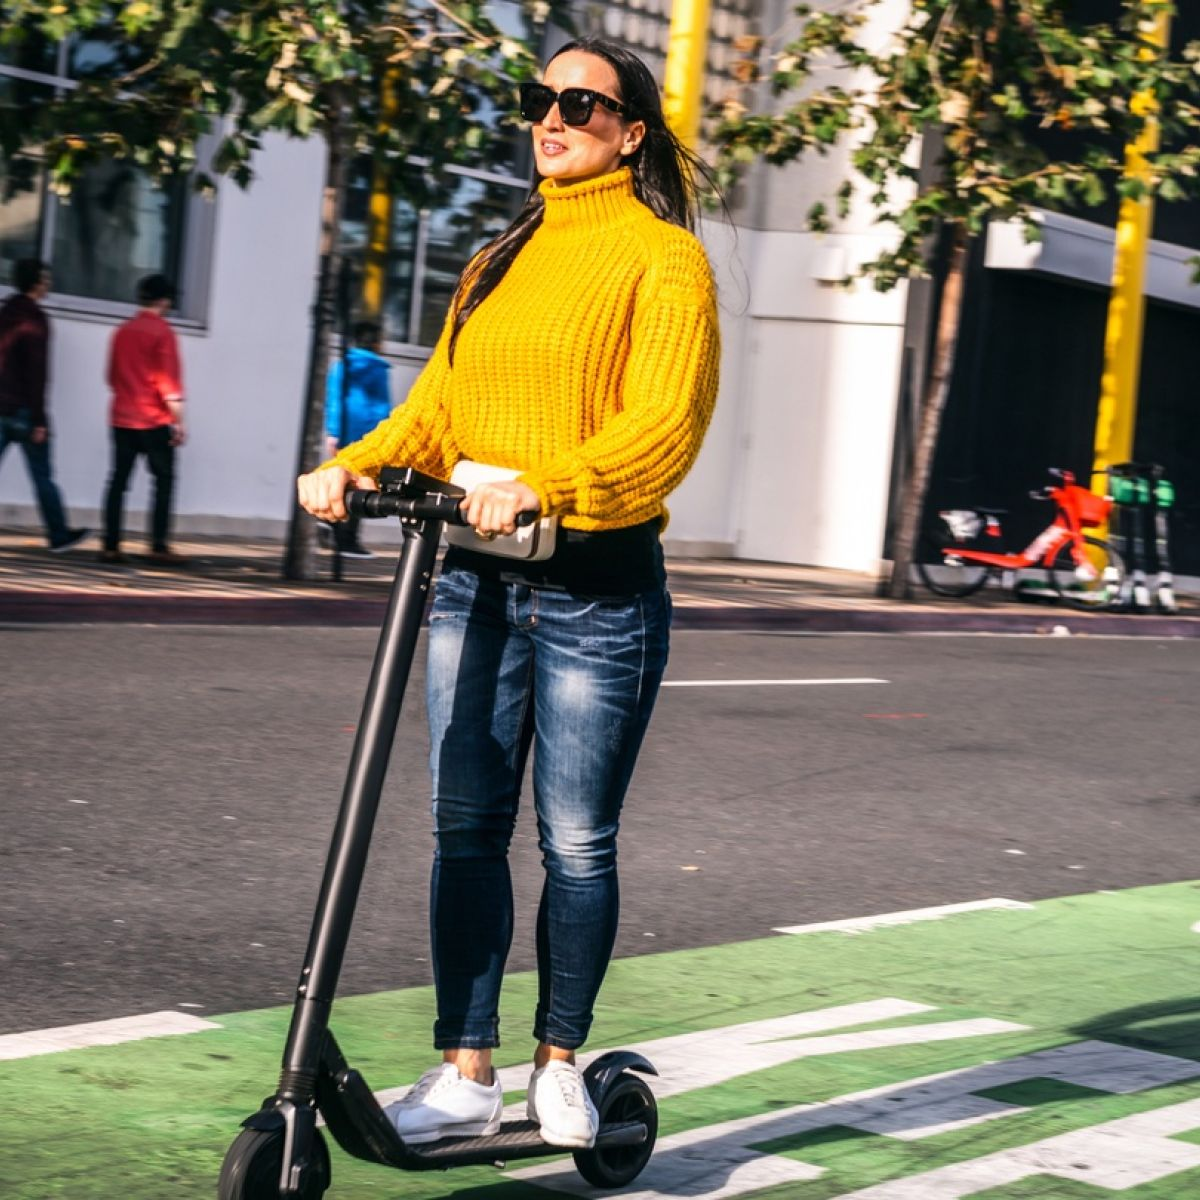 Electric scooters could save time and money but they remain